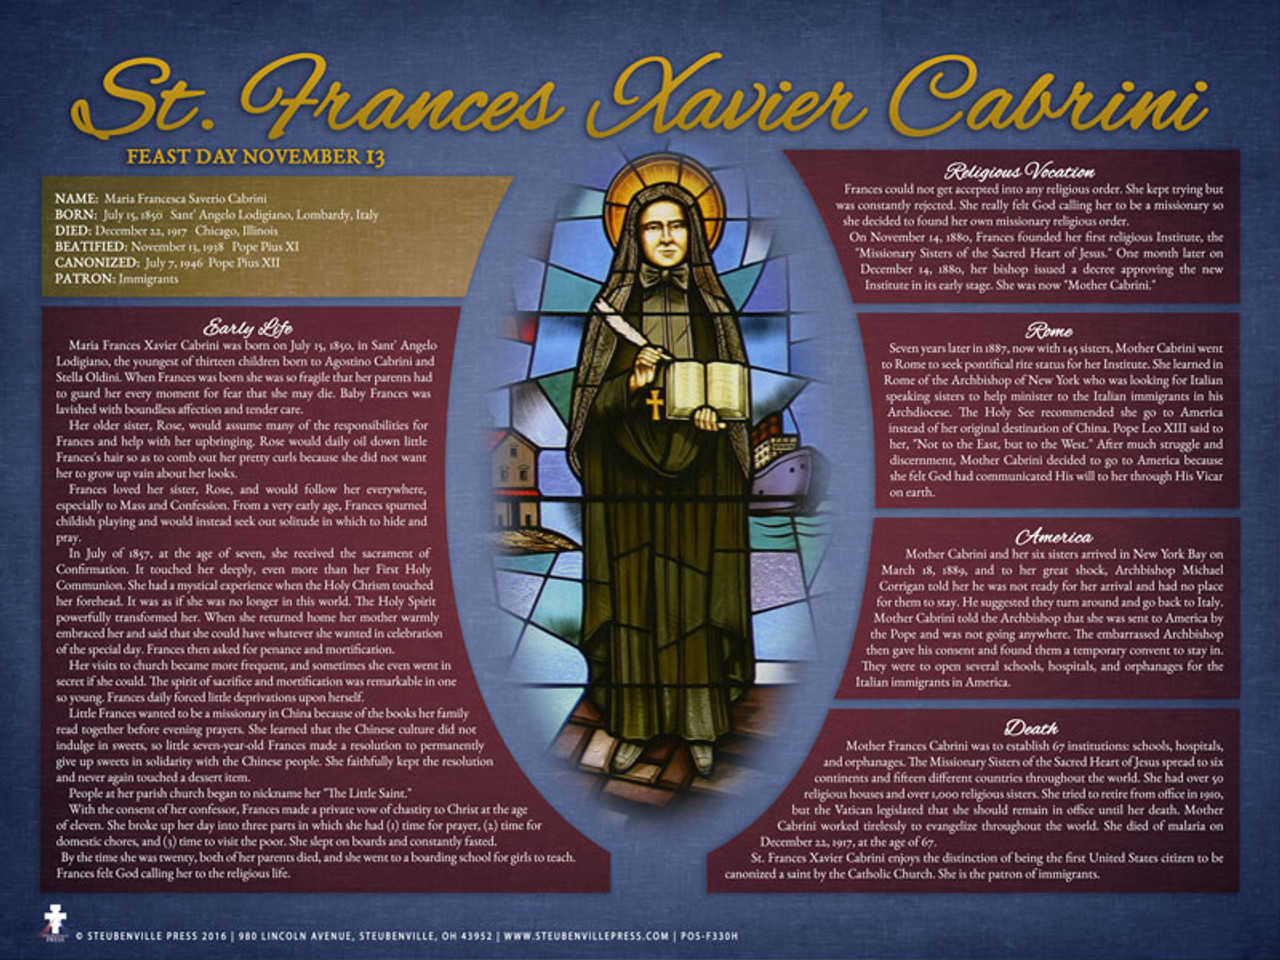 an introduction to the life of frances xavier cabrini Immigrant saint: the life of mother cabrini [pietro di donato, joseph pizzardo]  on  an american saint of our day: mother frances xavier cabrini missionary.